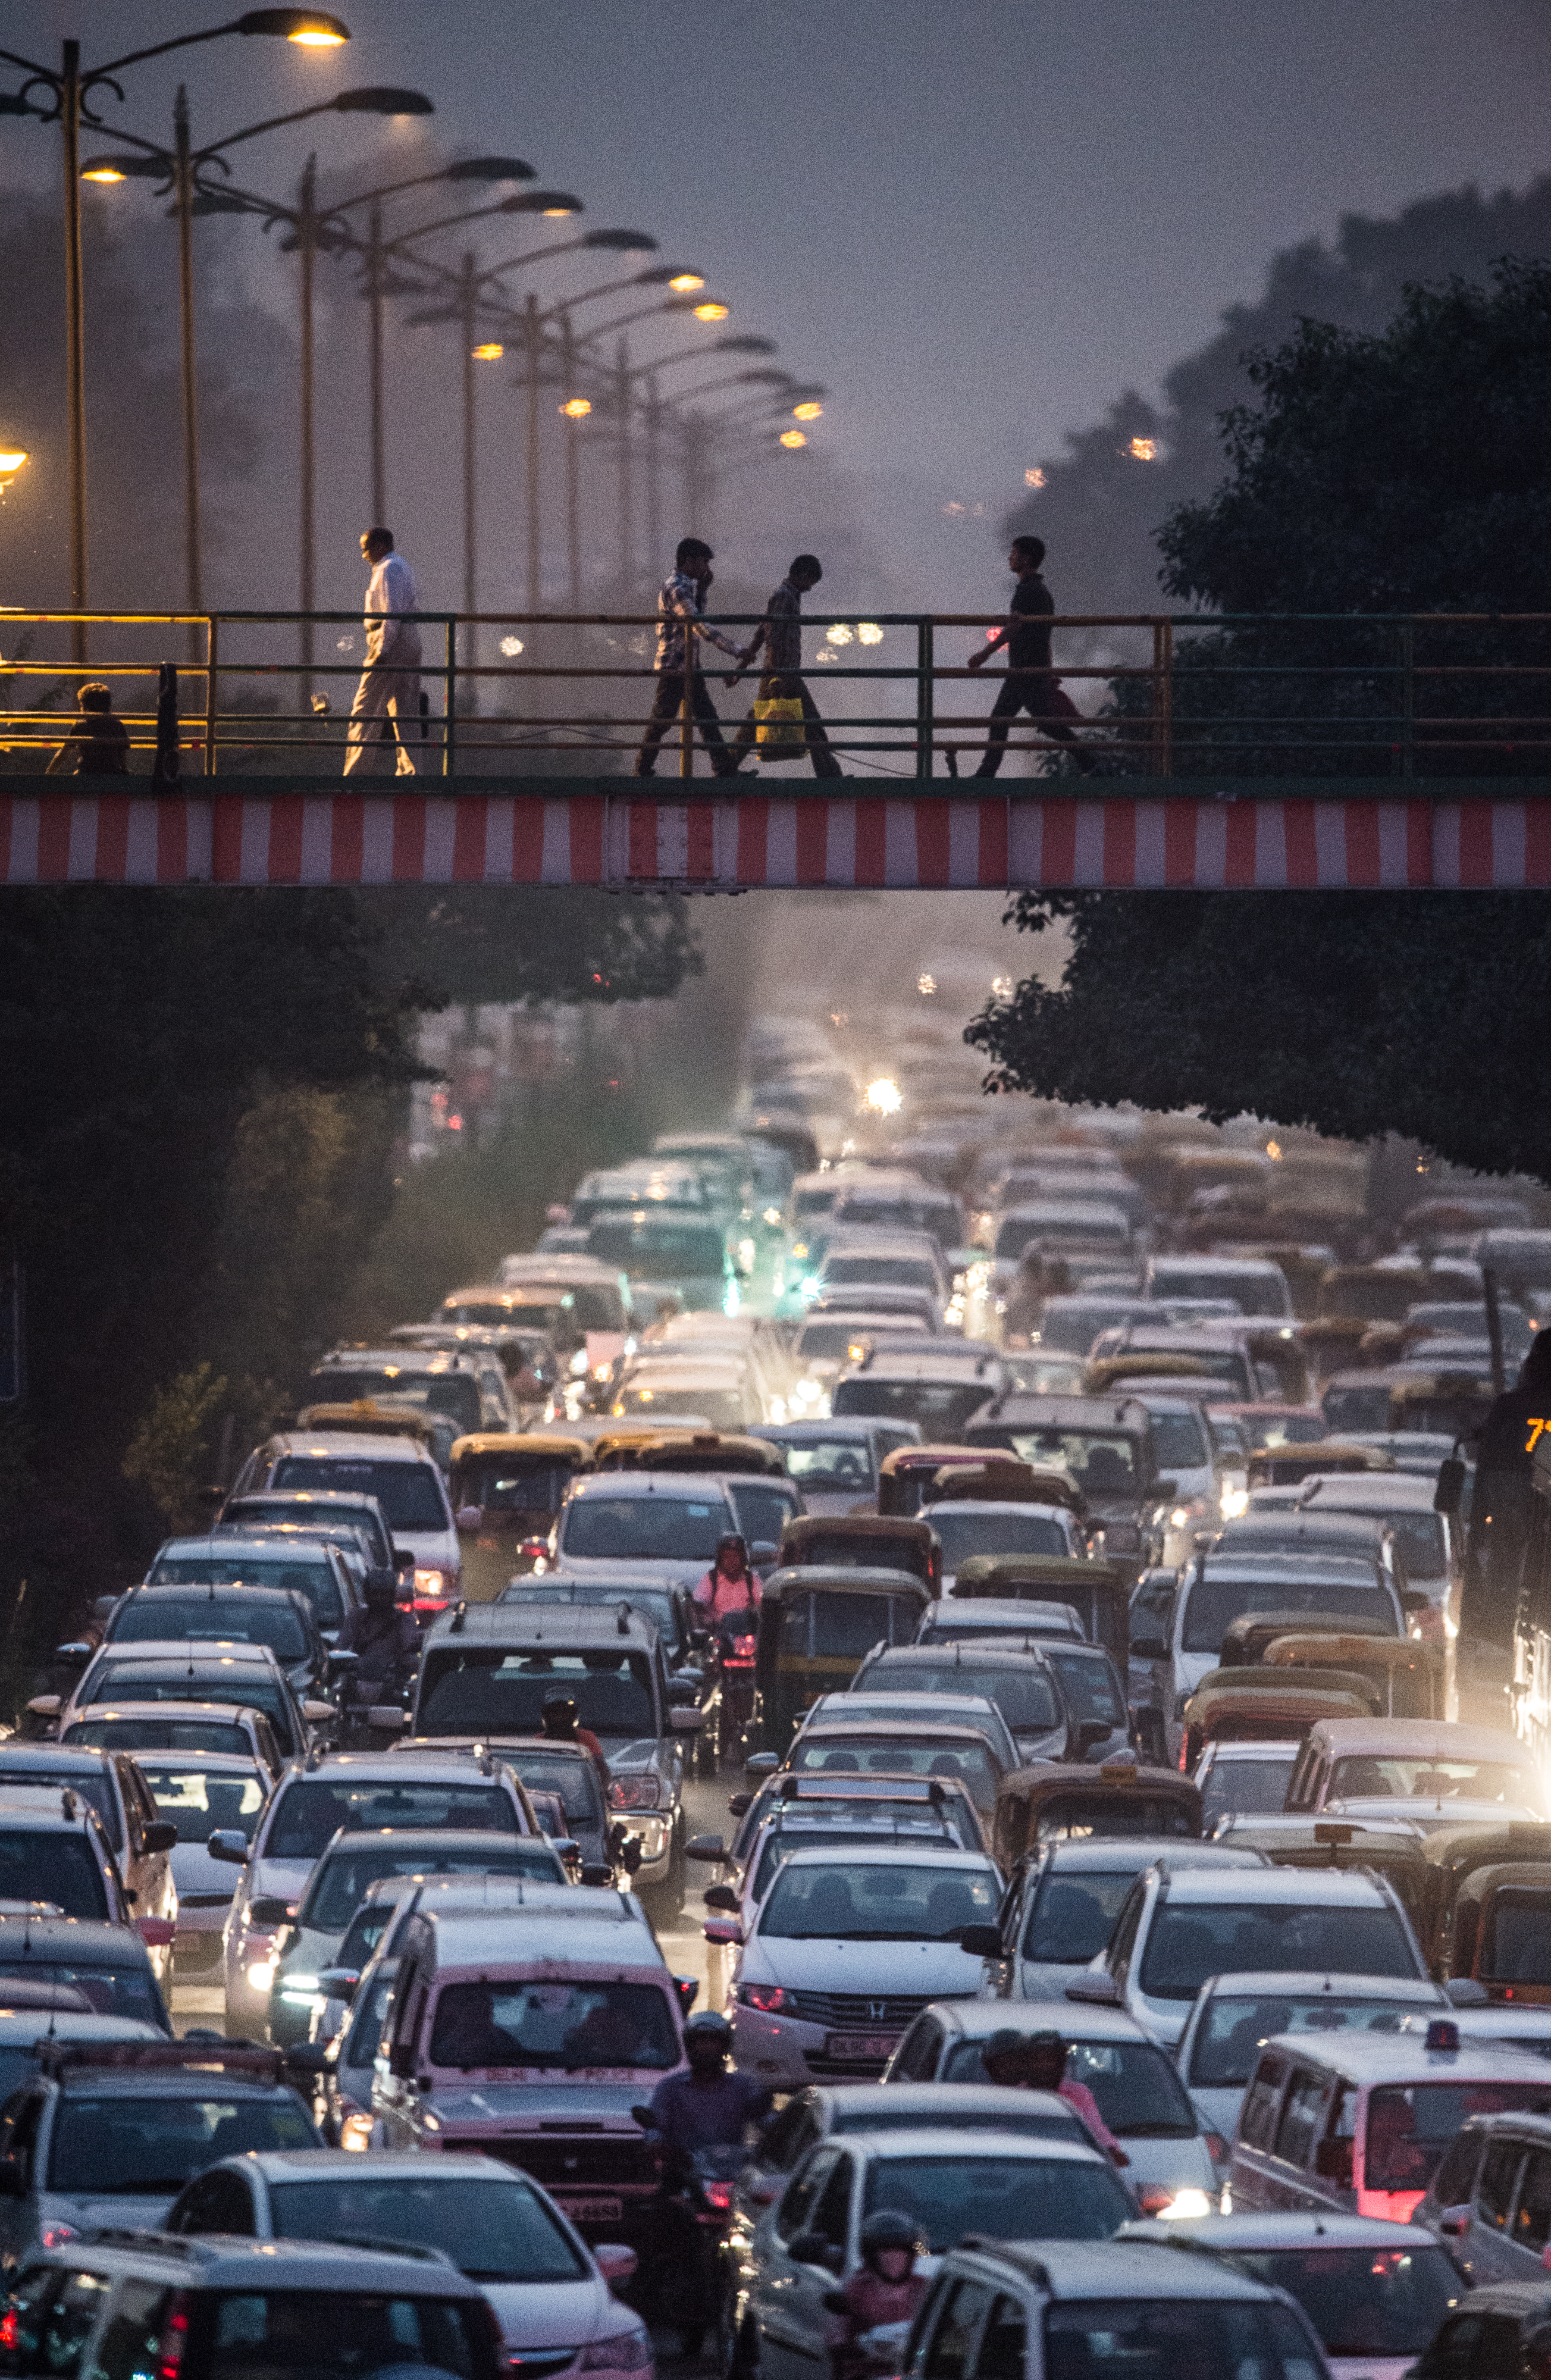 Improving air quality requires sacrifices. But how many are willing to ditch their diesel cars and take the bus or Metro? (Roberto Schmidt / AFP)